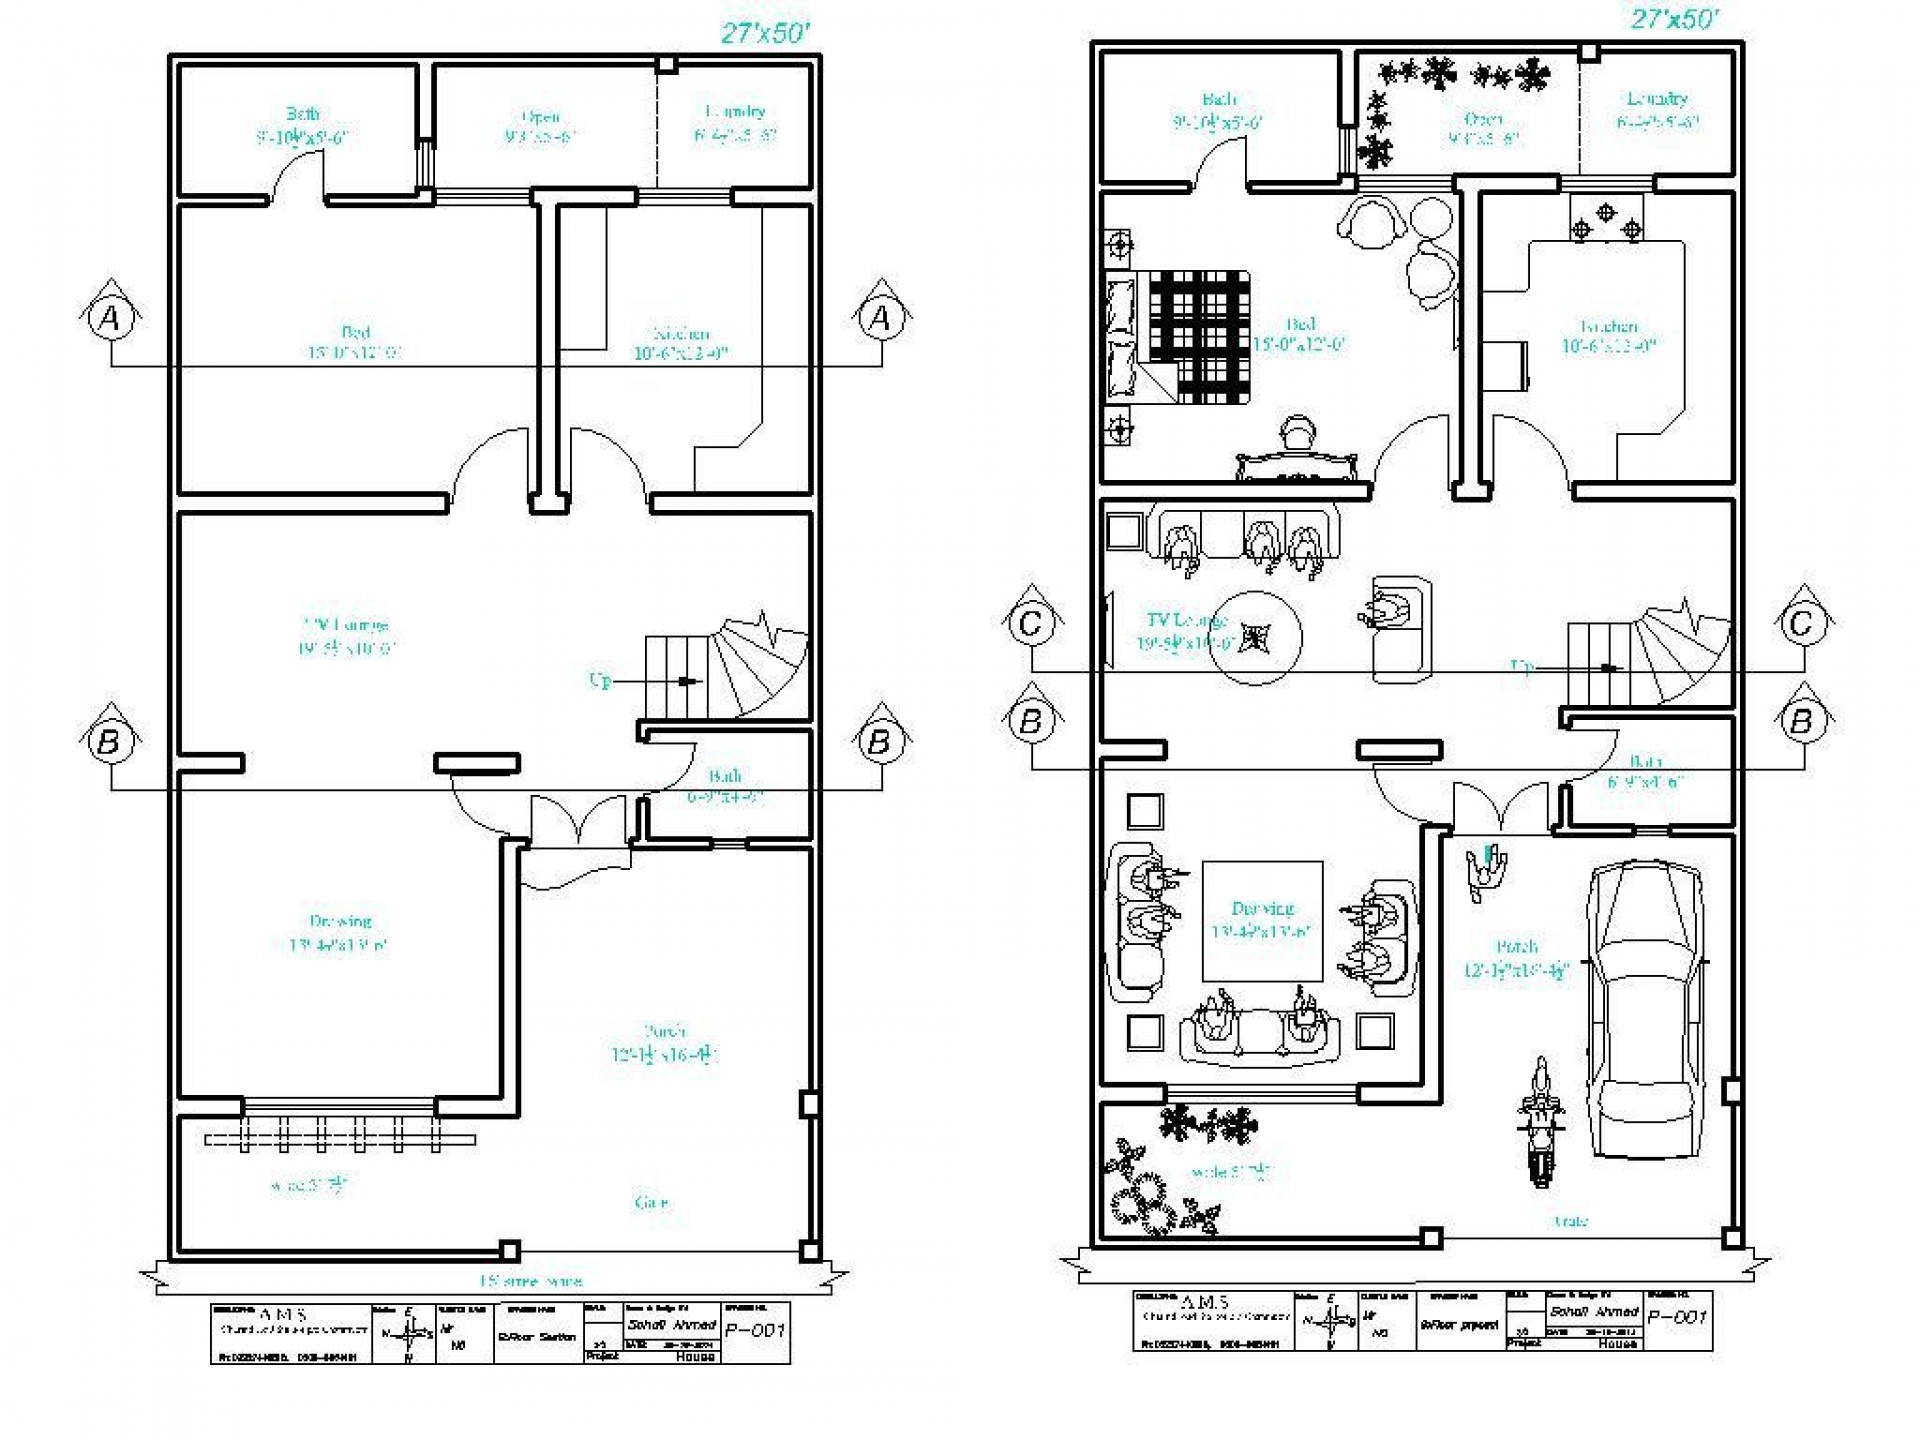 000 Sensational Free Floor Plan Template Idea  Excel Home House Sample1920